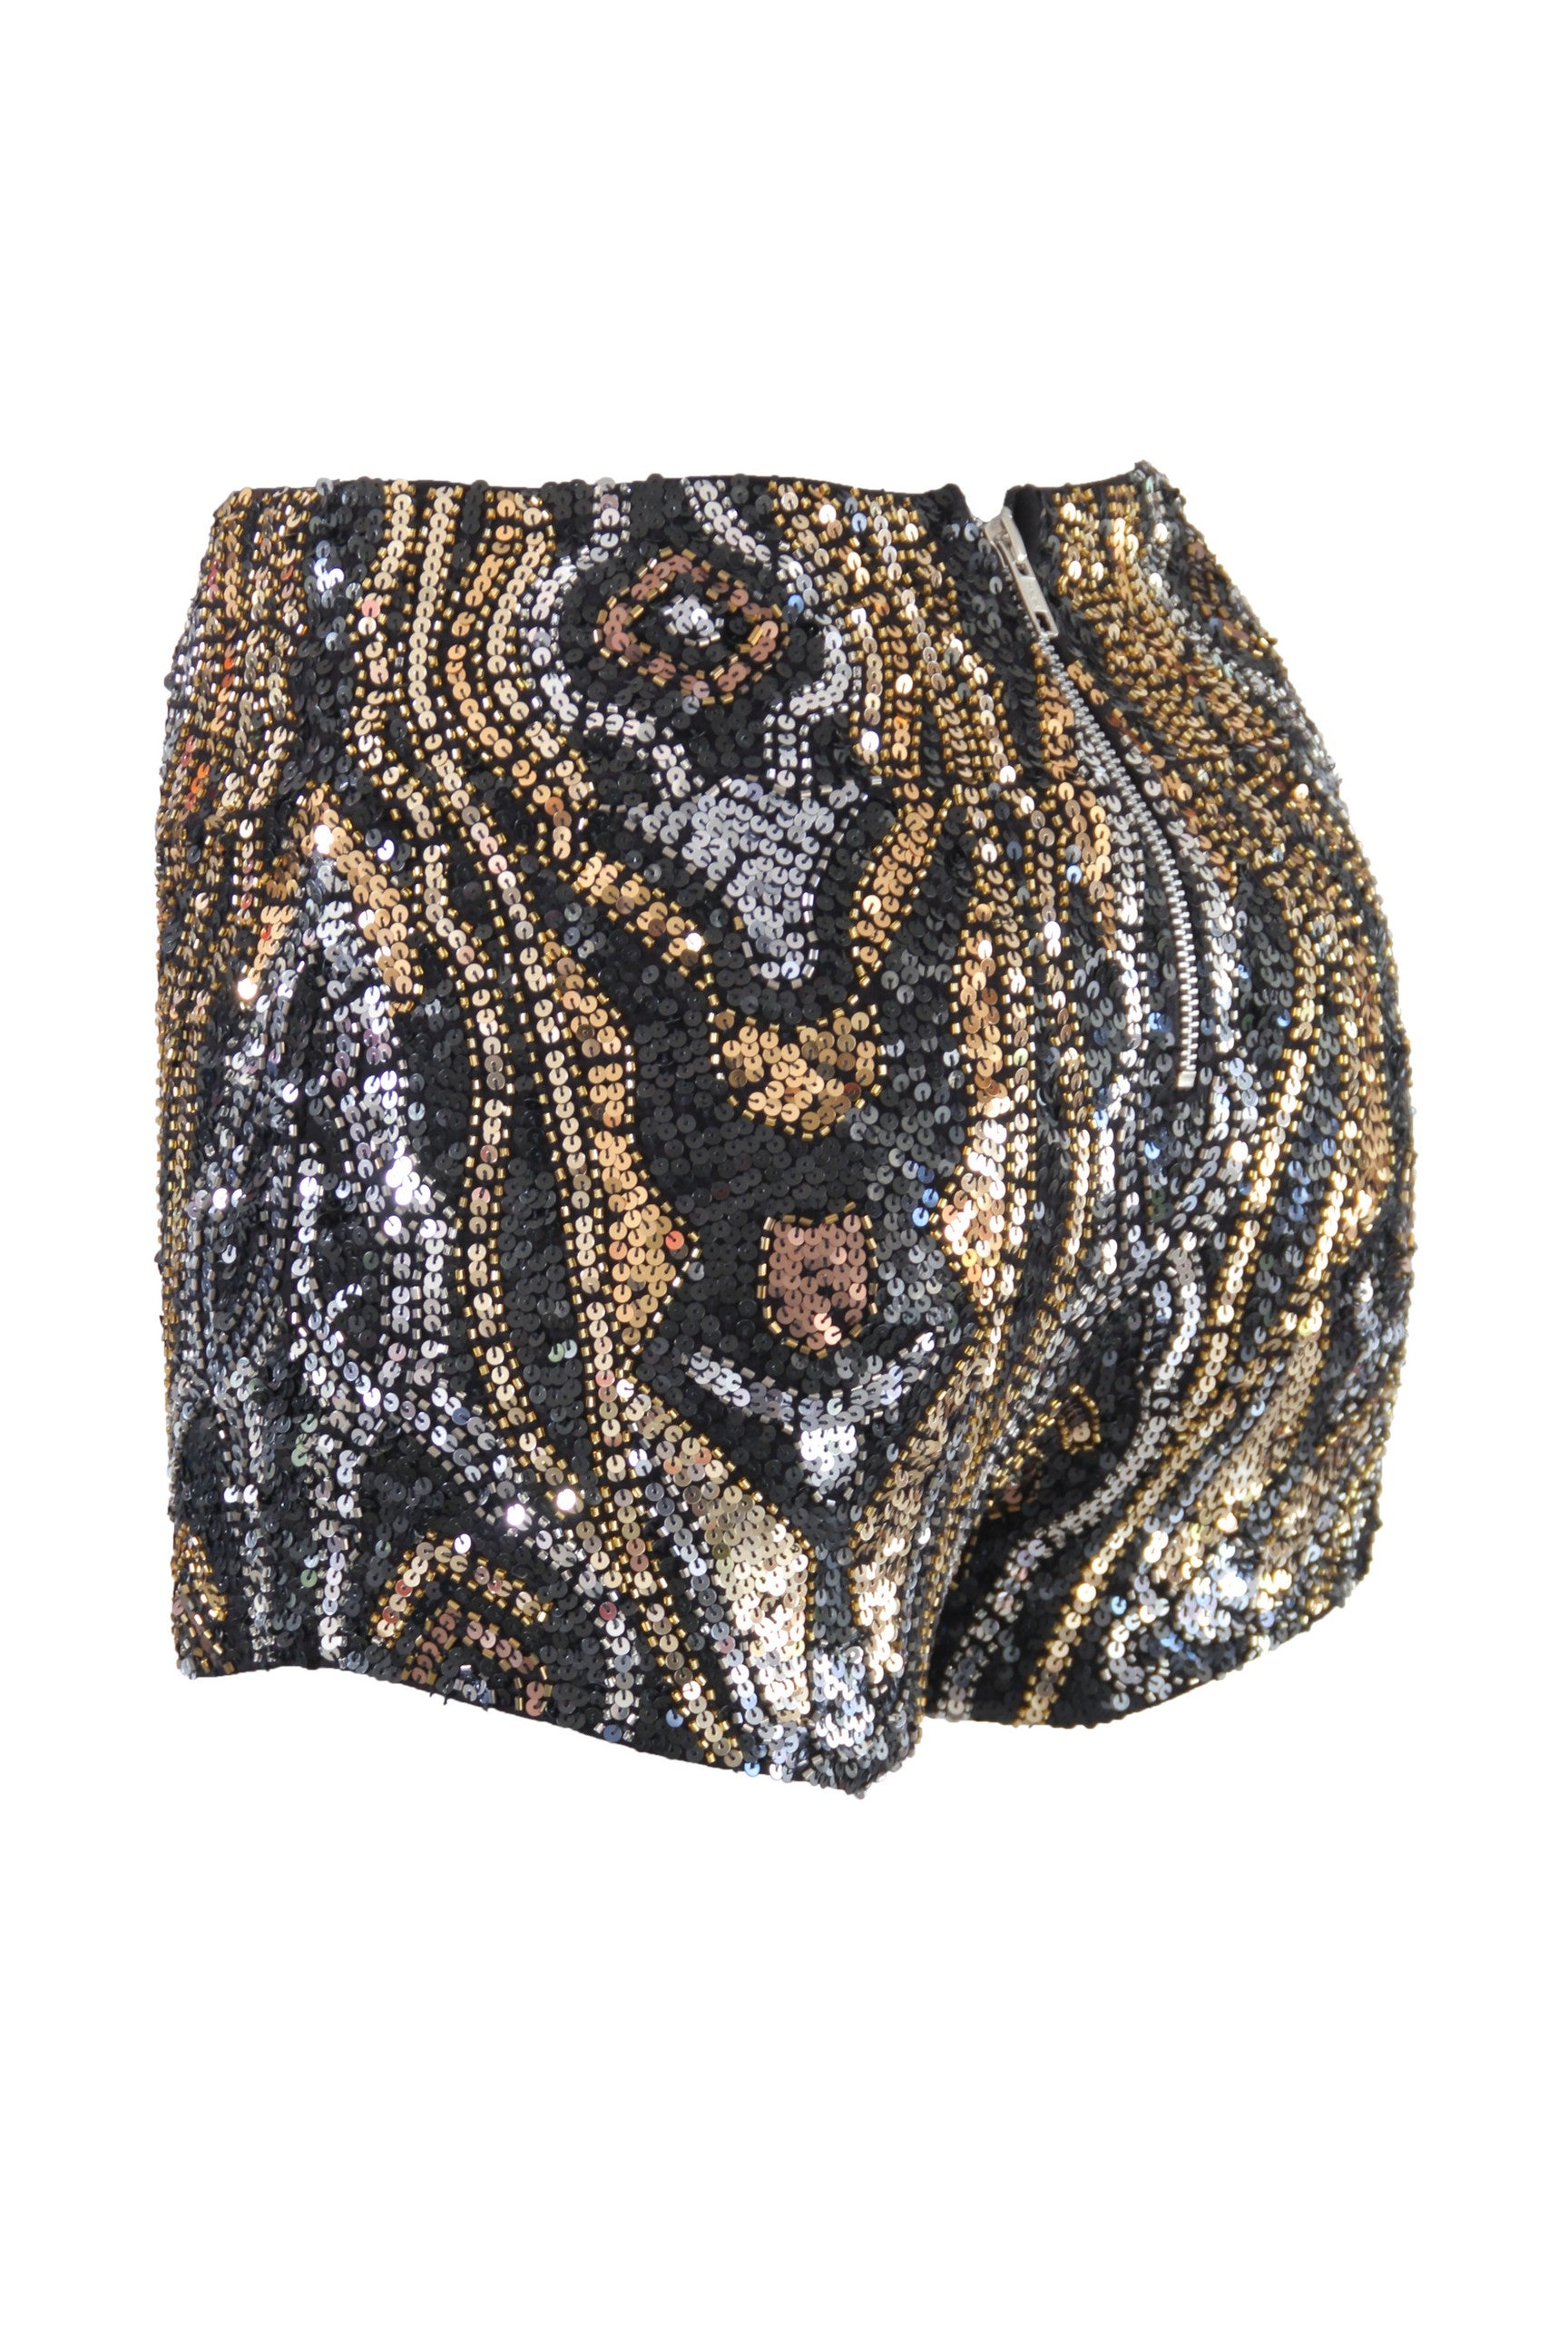 Shorts High Waist Serpent Black